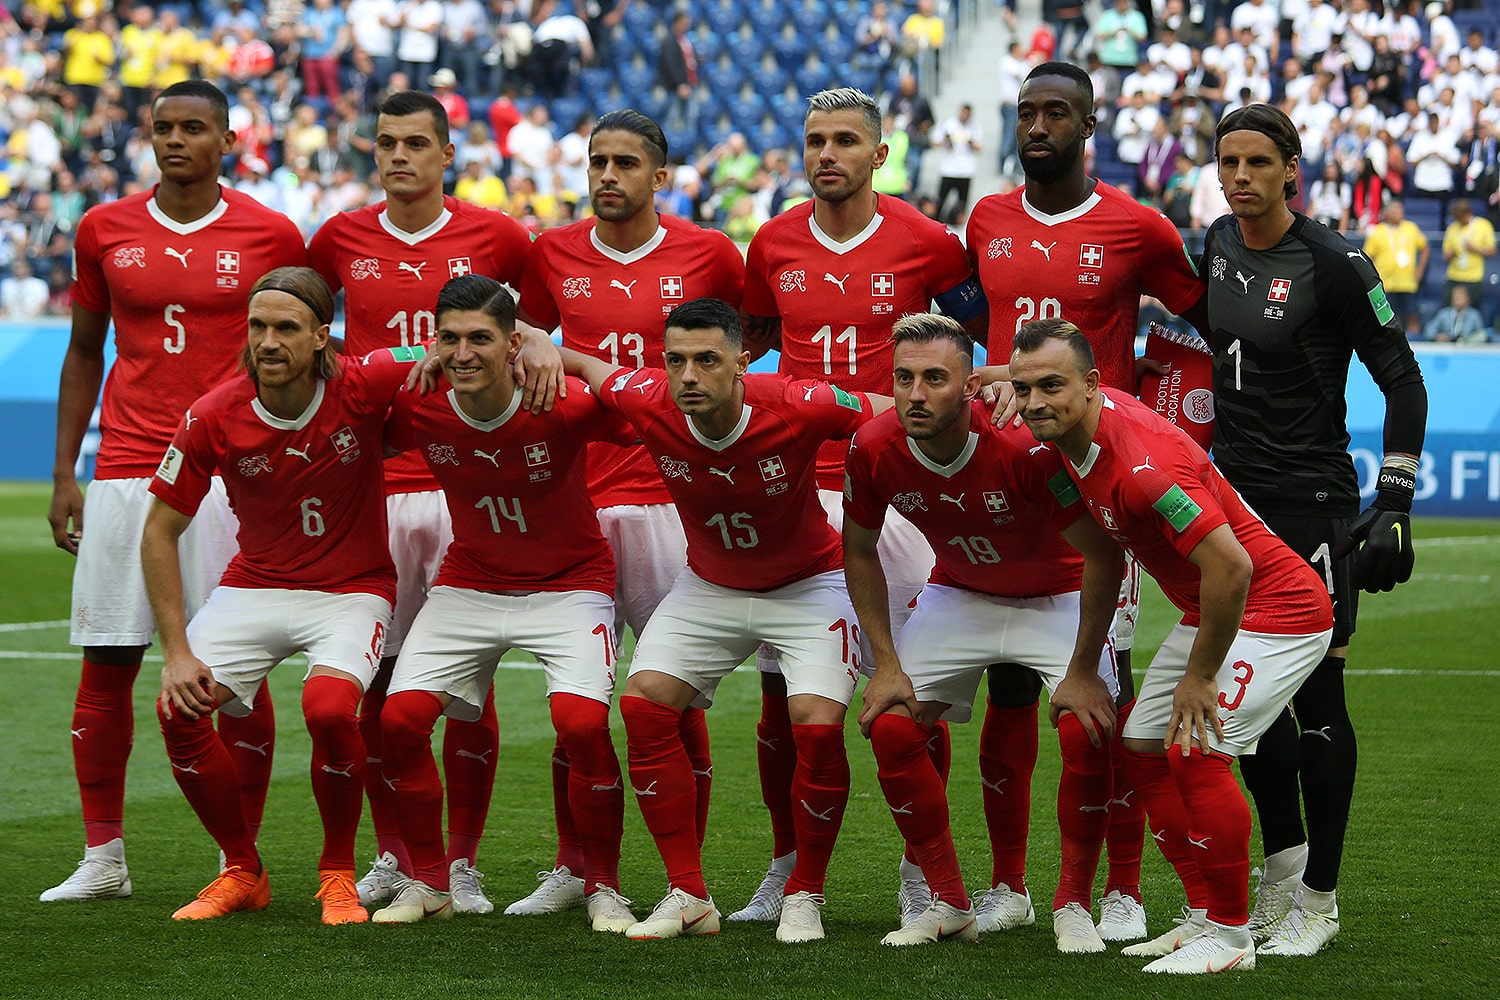 Switzerland vs Denmark: live stream, kick off time, preview, prediction & how to watch